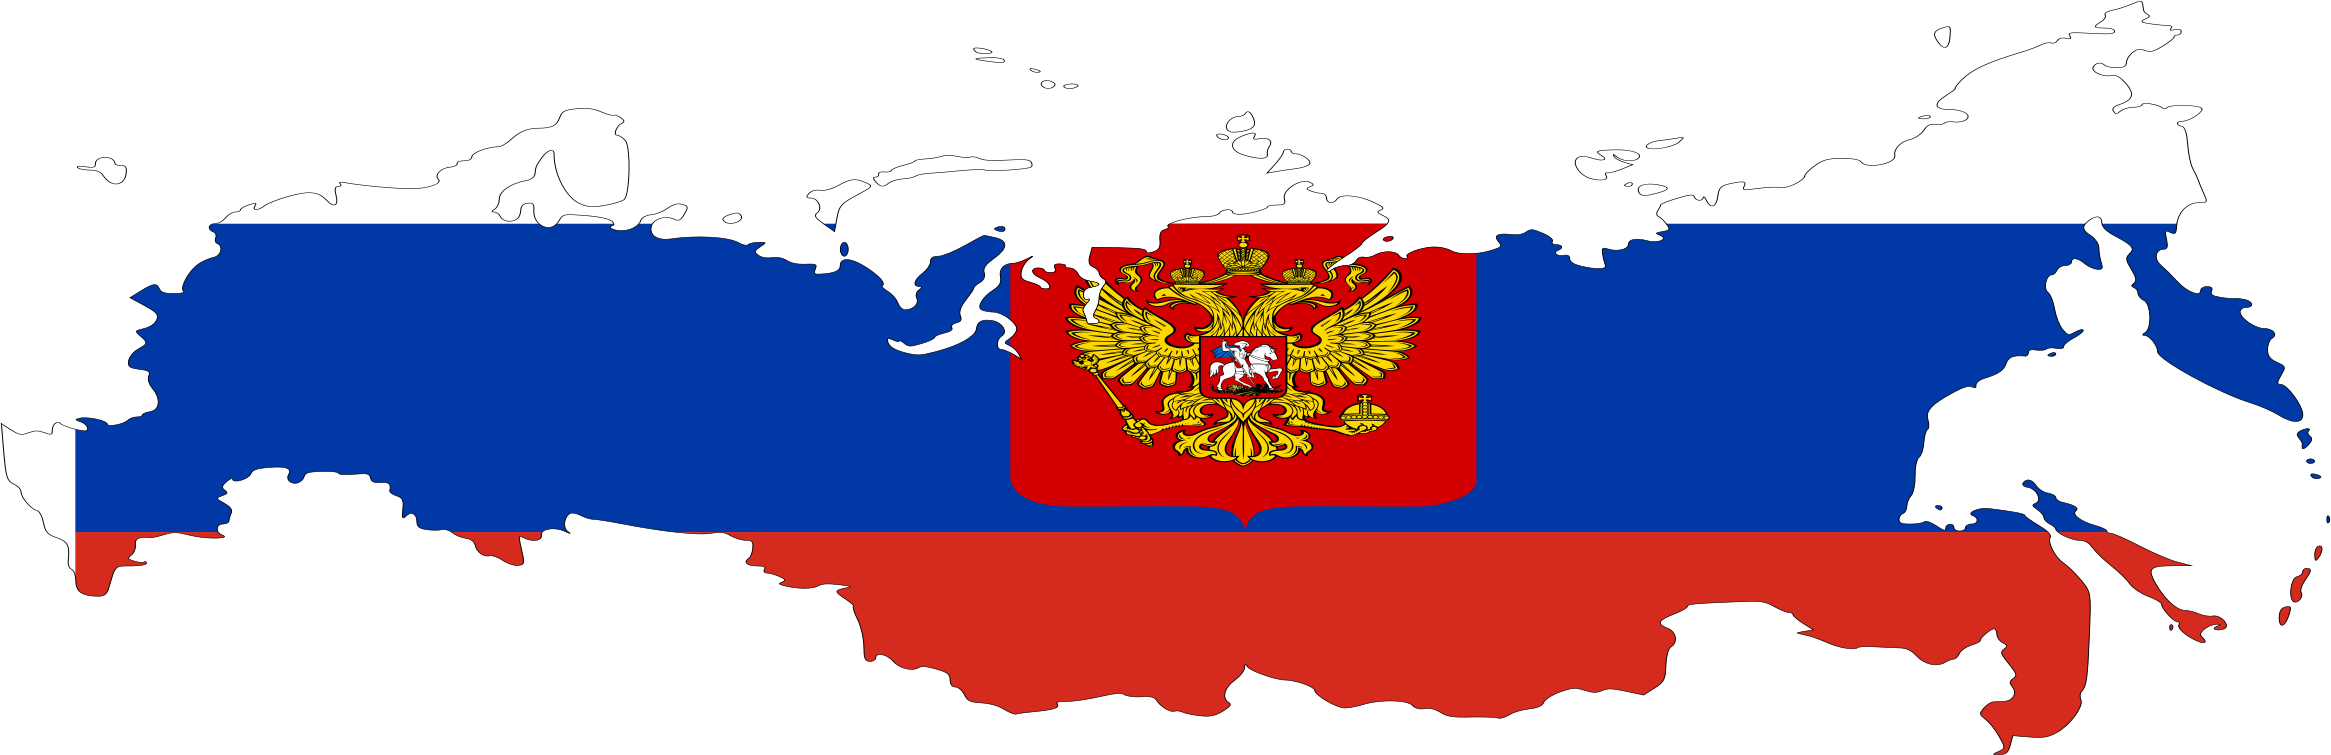 Russian flag by Issi